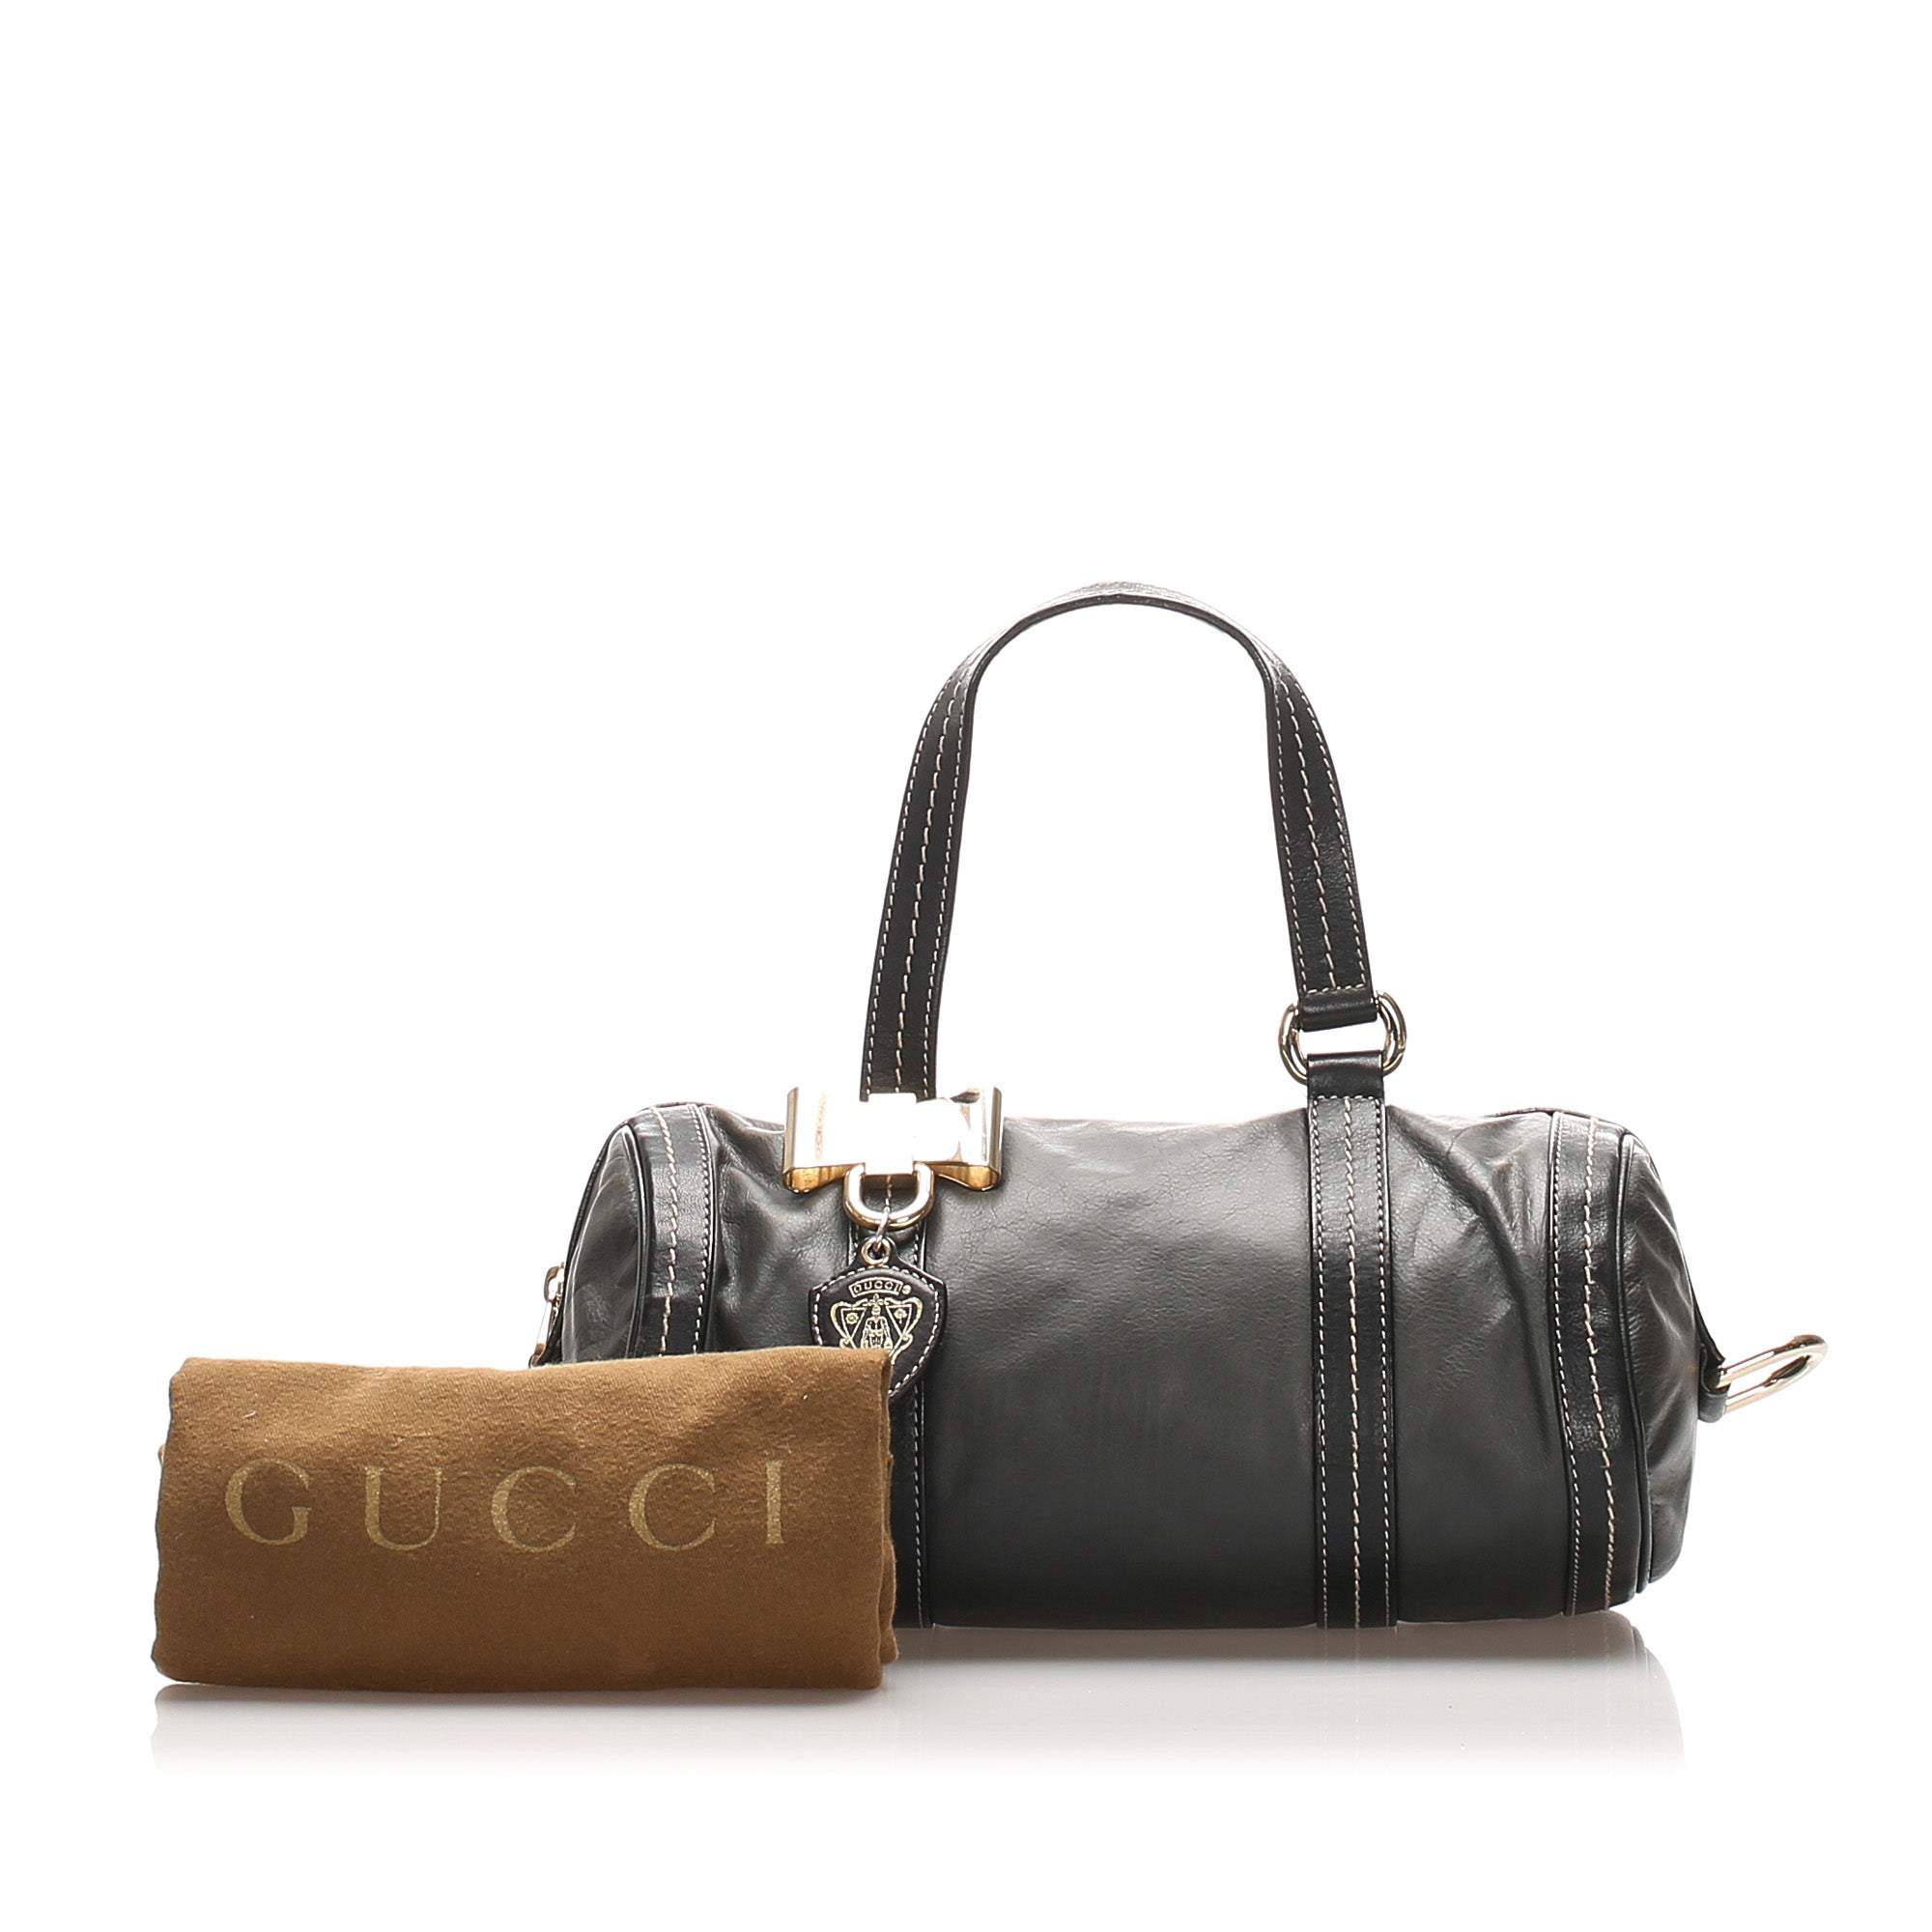 Gucci Black Mini Duchessa Leather Boston Bag